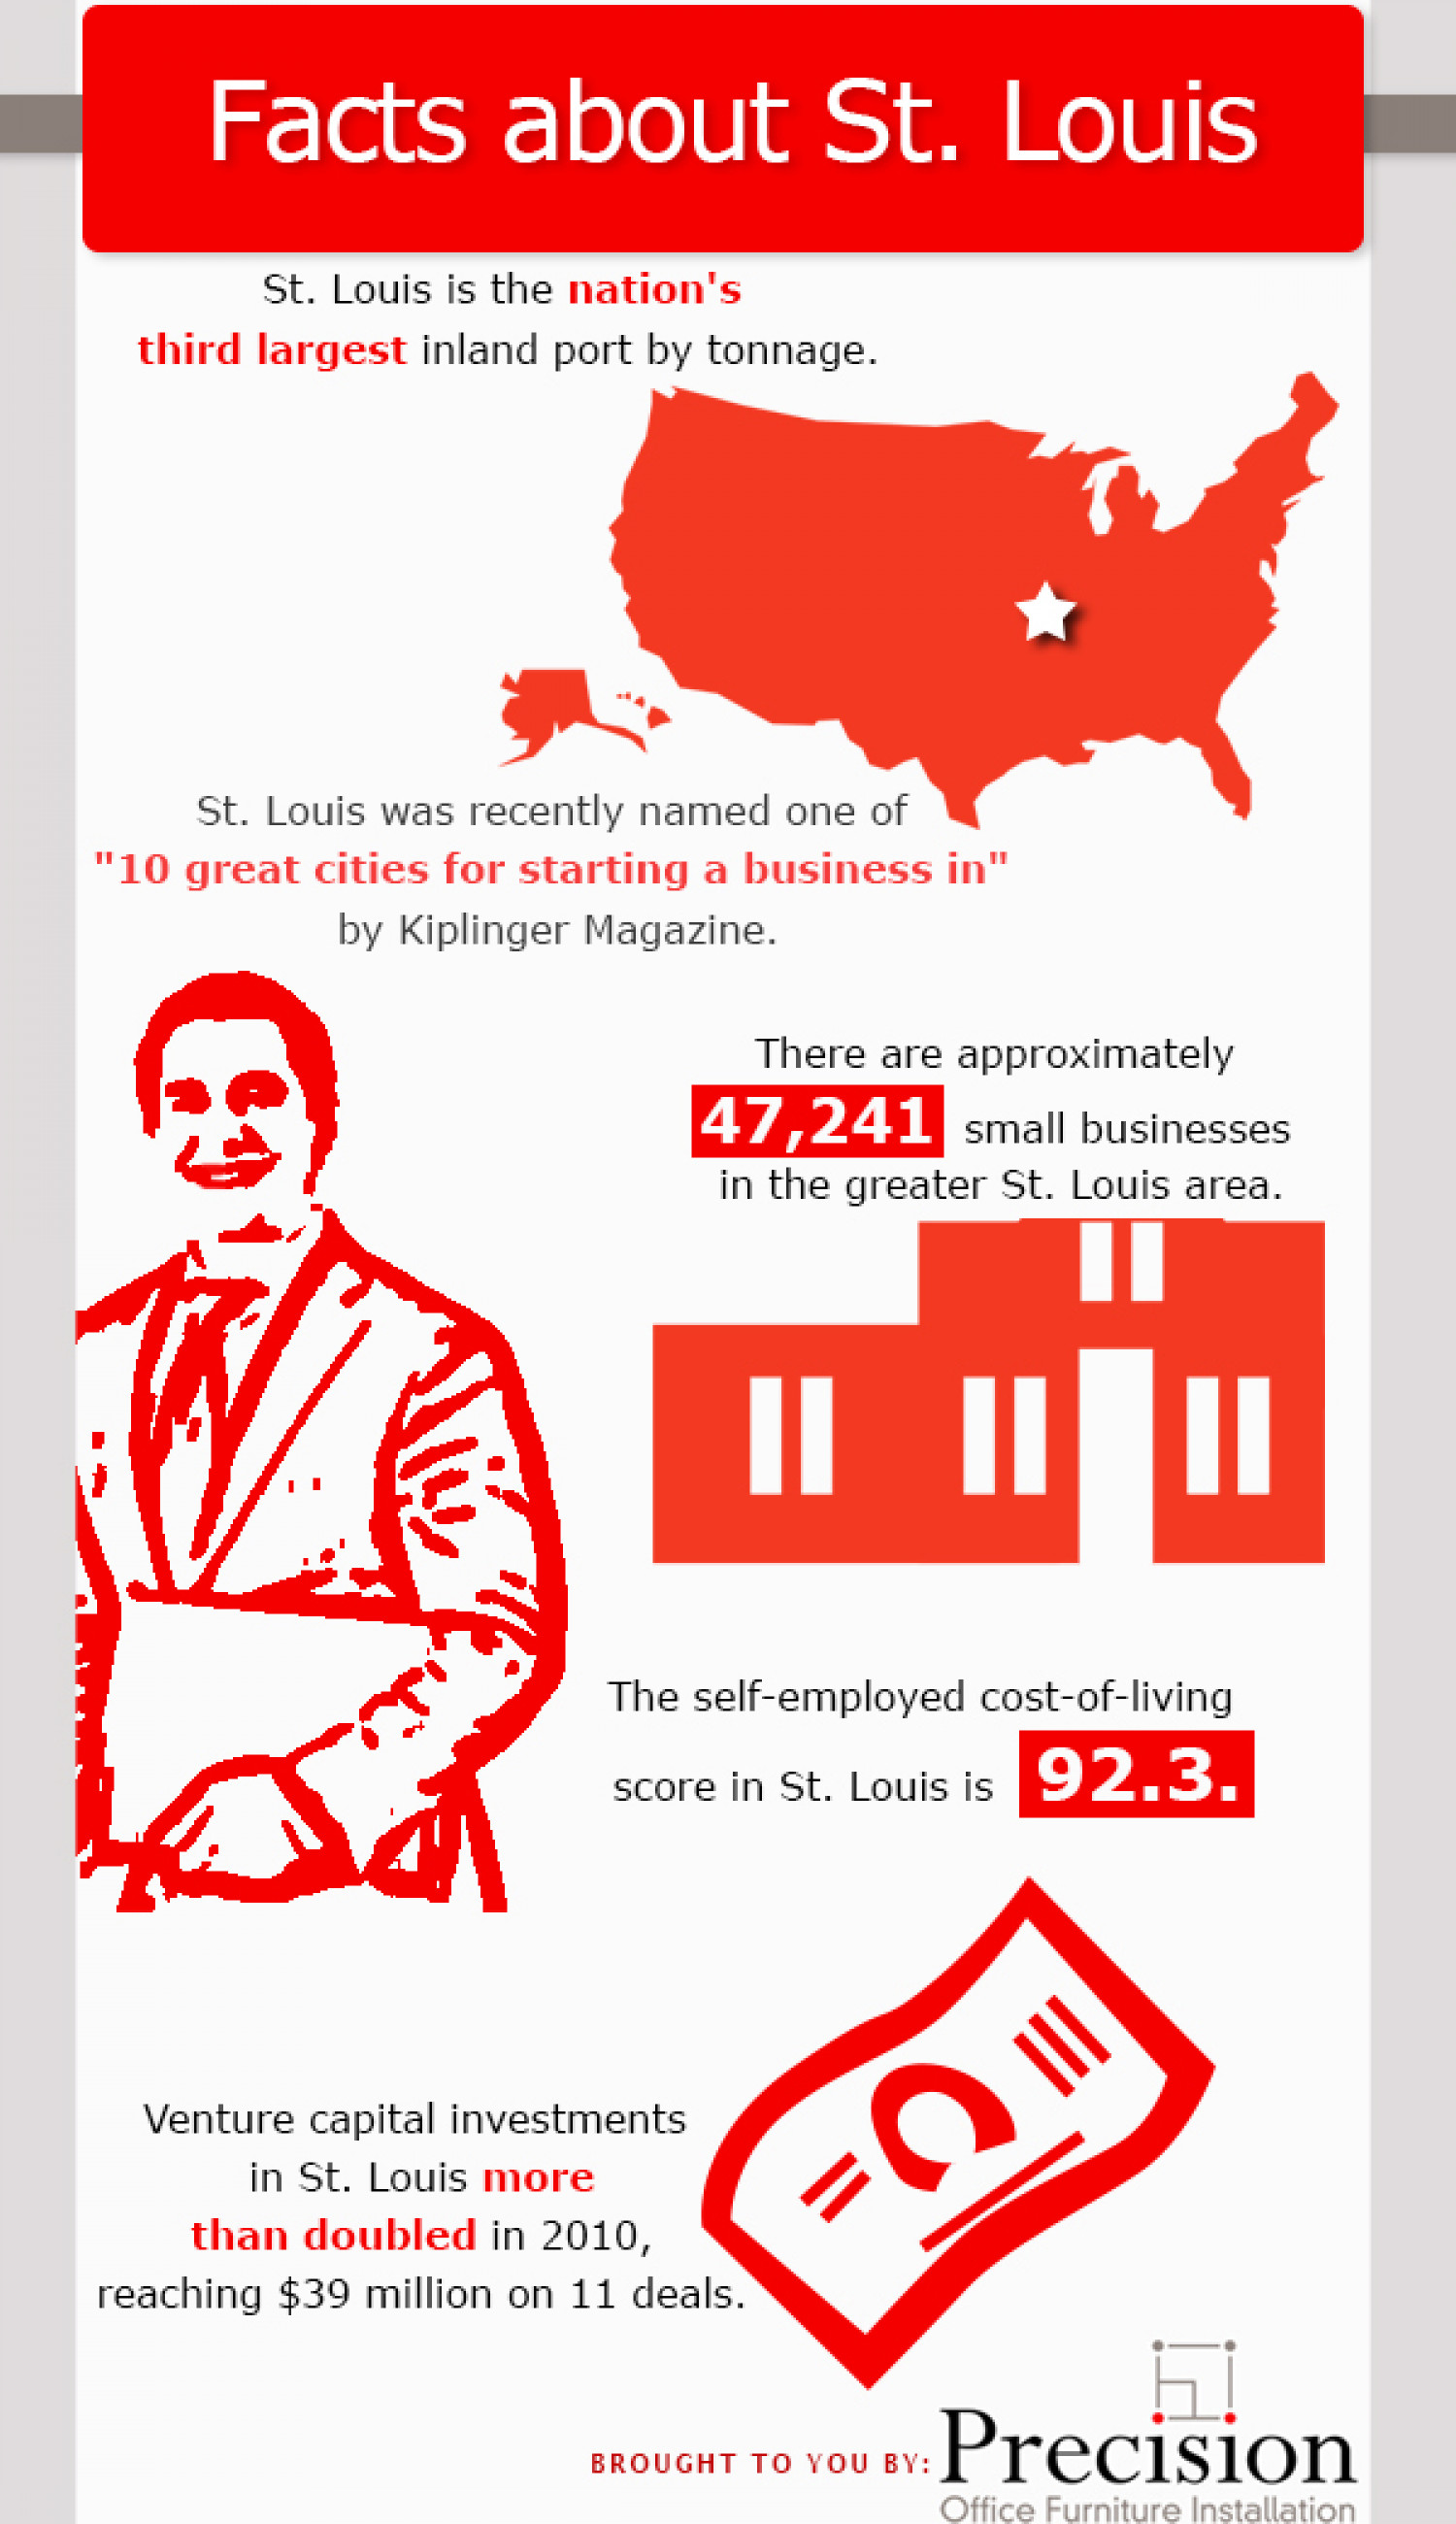 Facts About St. Louis Infographic